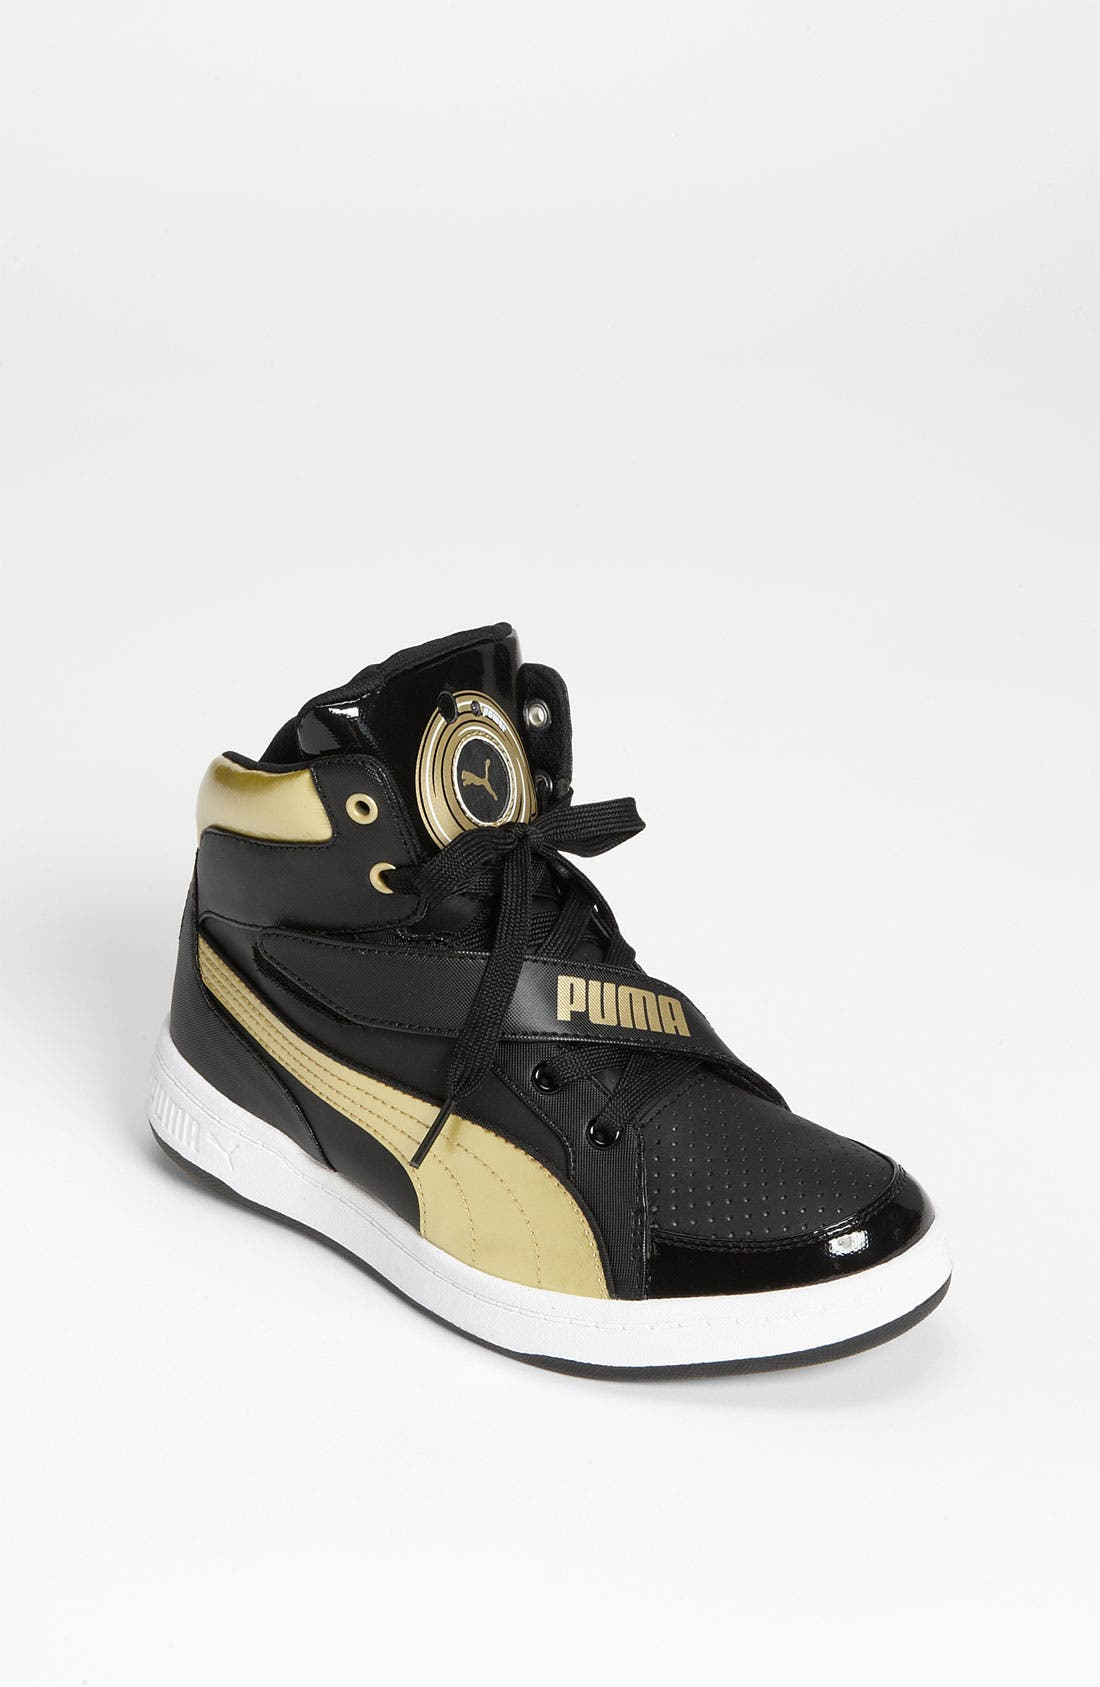 Alternate Image 1 Selected - PUMA 'DJ 6S Jr.' Sneaker (Toddler, Little Kid & Big Kid)